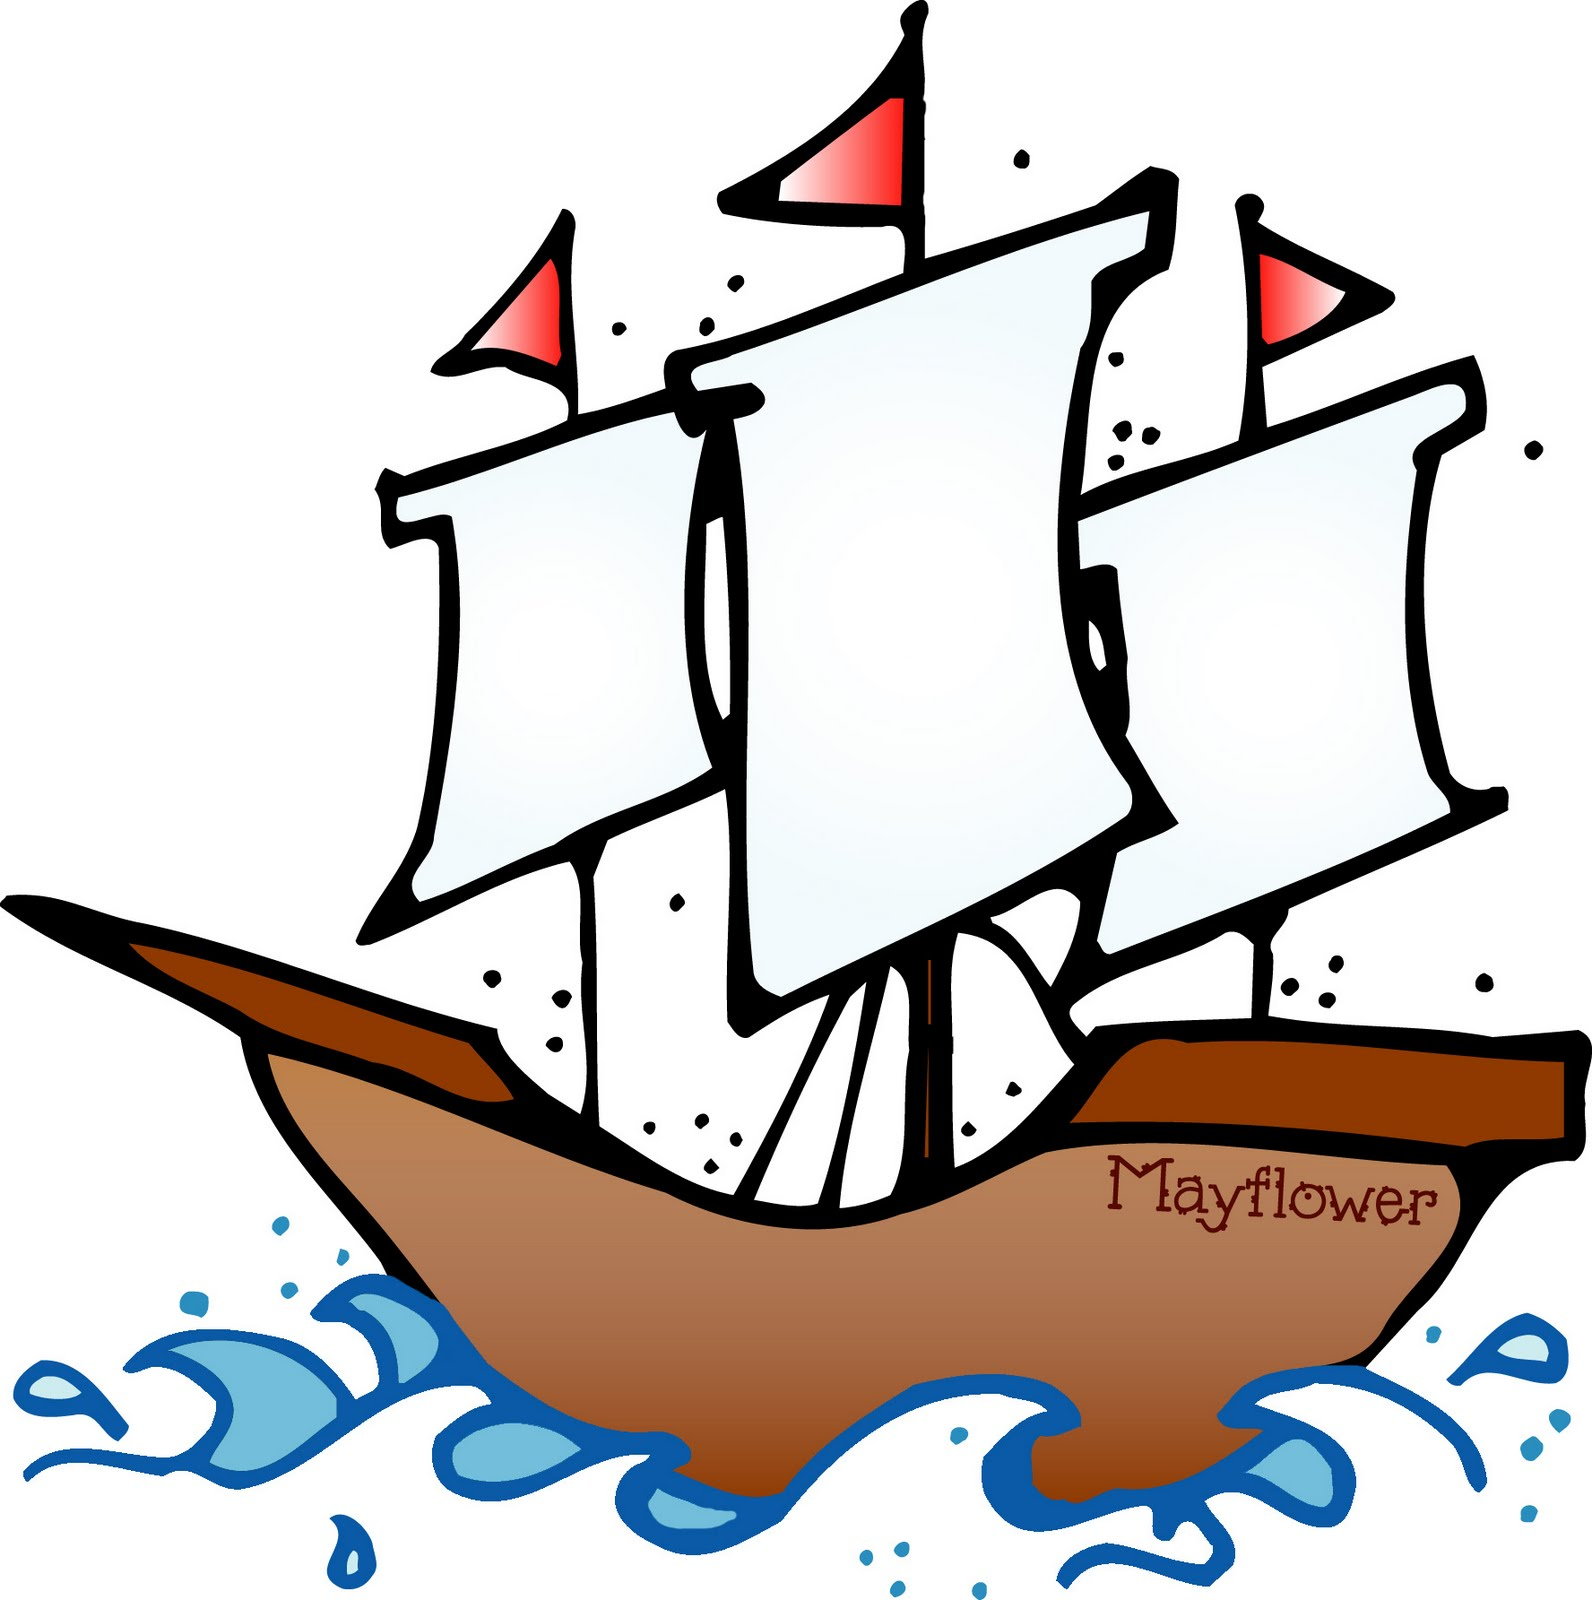 picture black and white download Free cliparts download clip. Mayflower clipart.